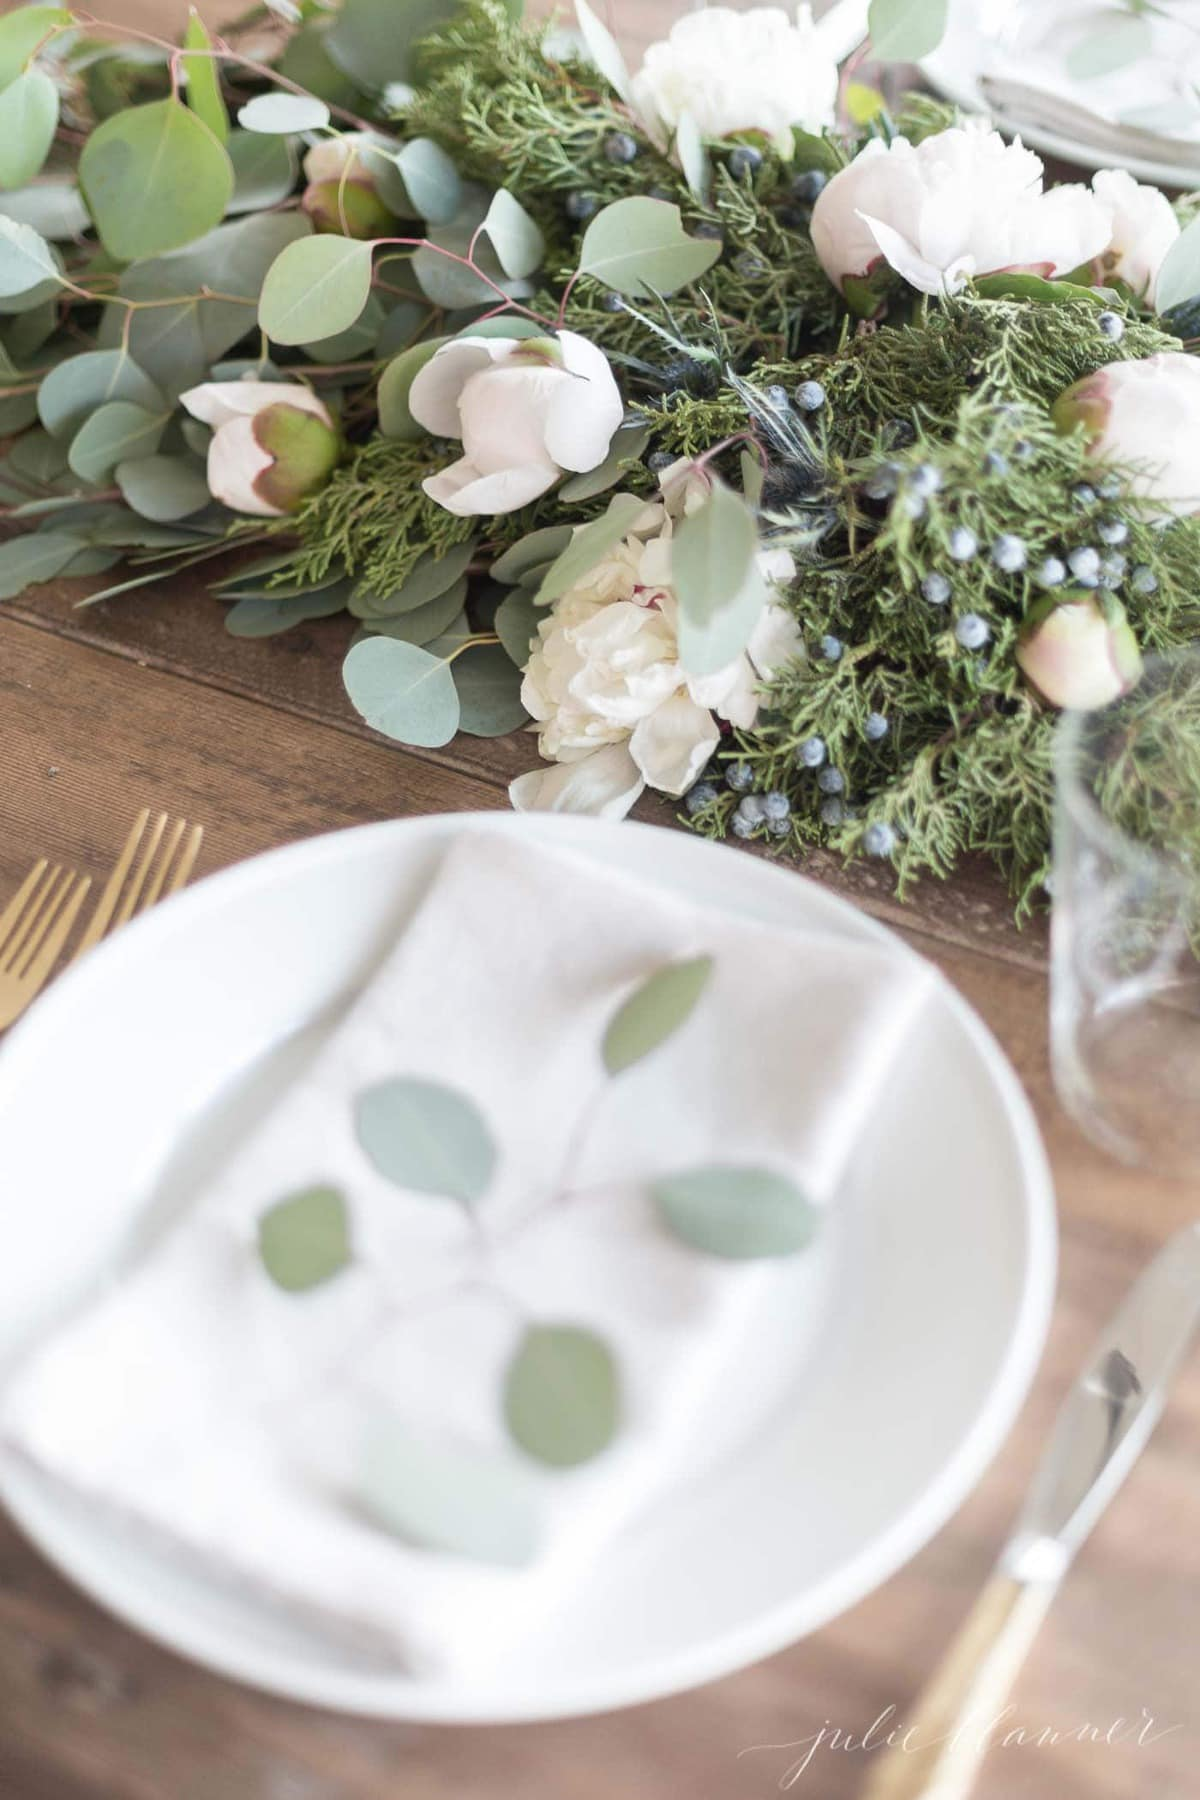 Christmas greens and fresh blooms on a dining room table.